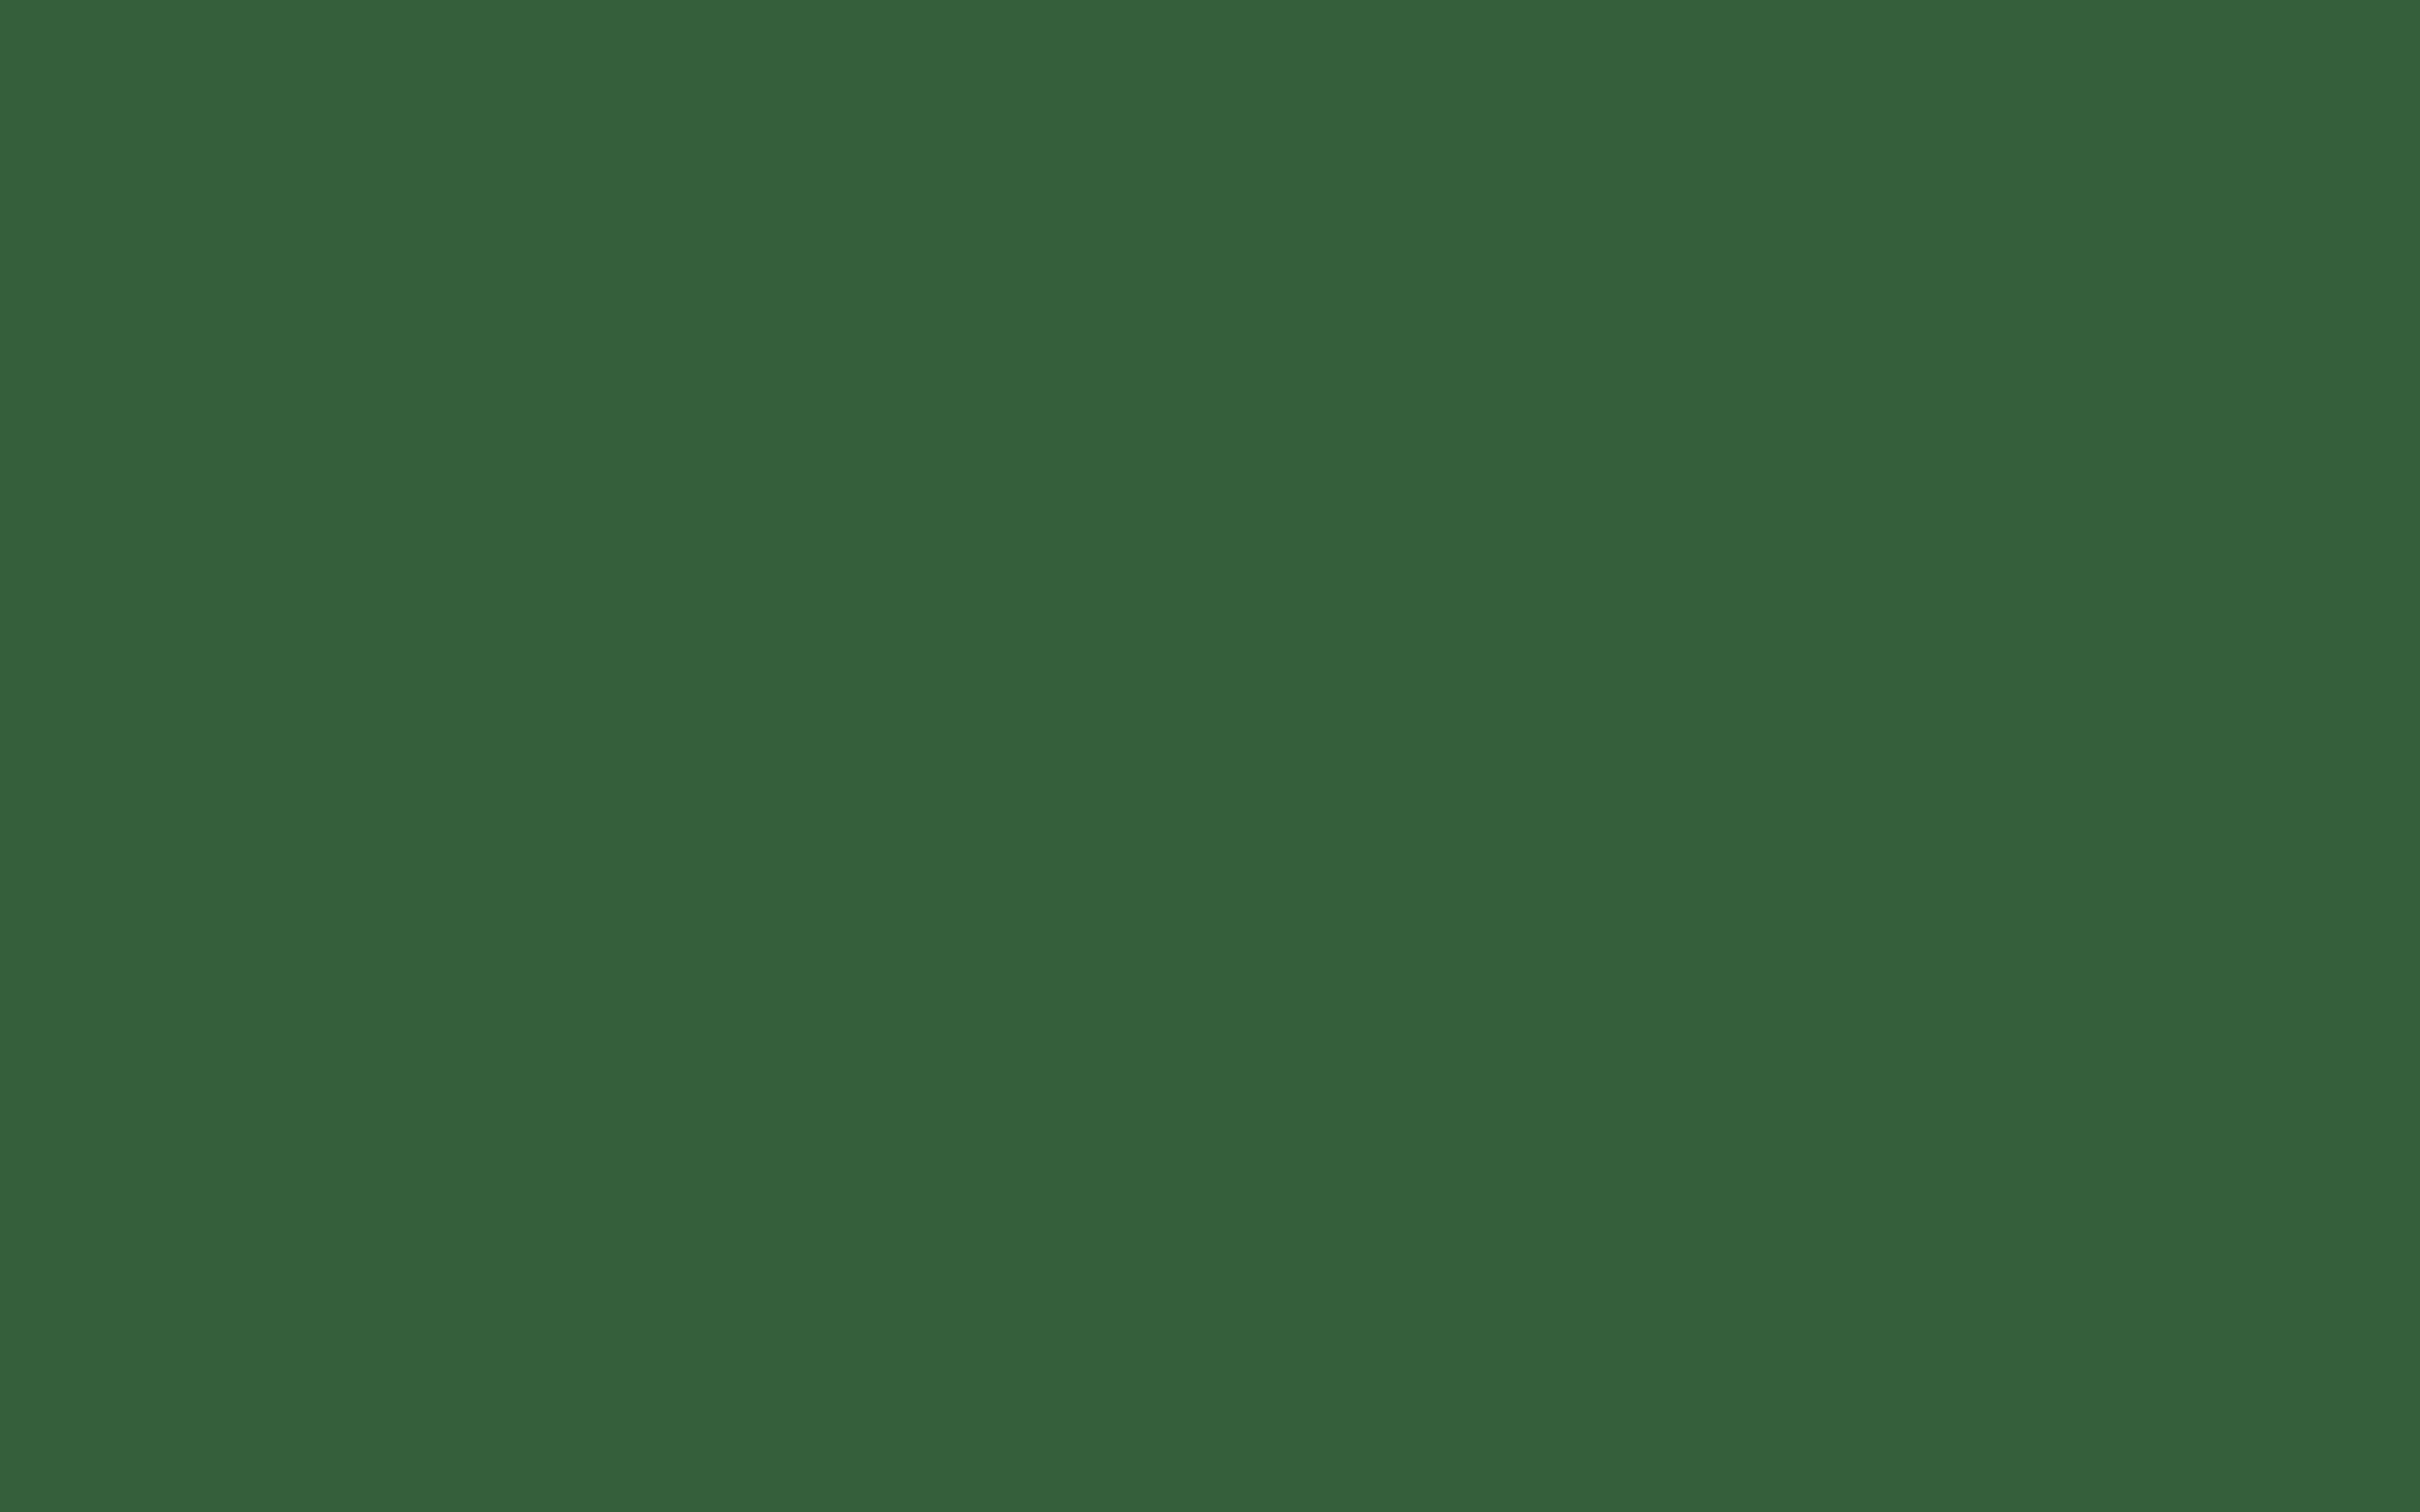 2560x1600 Deep Moss Green Solid Color Background